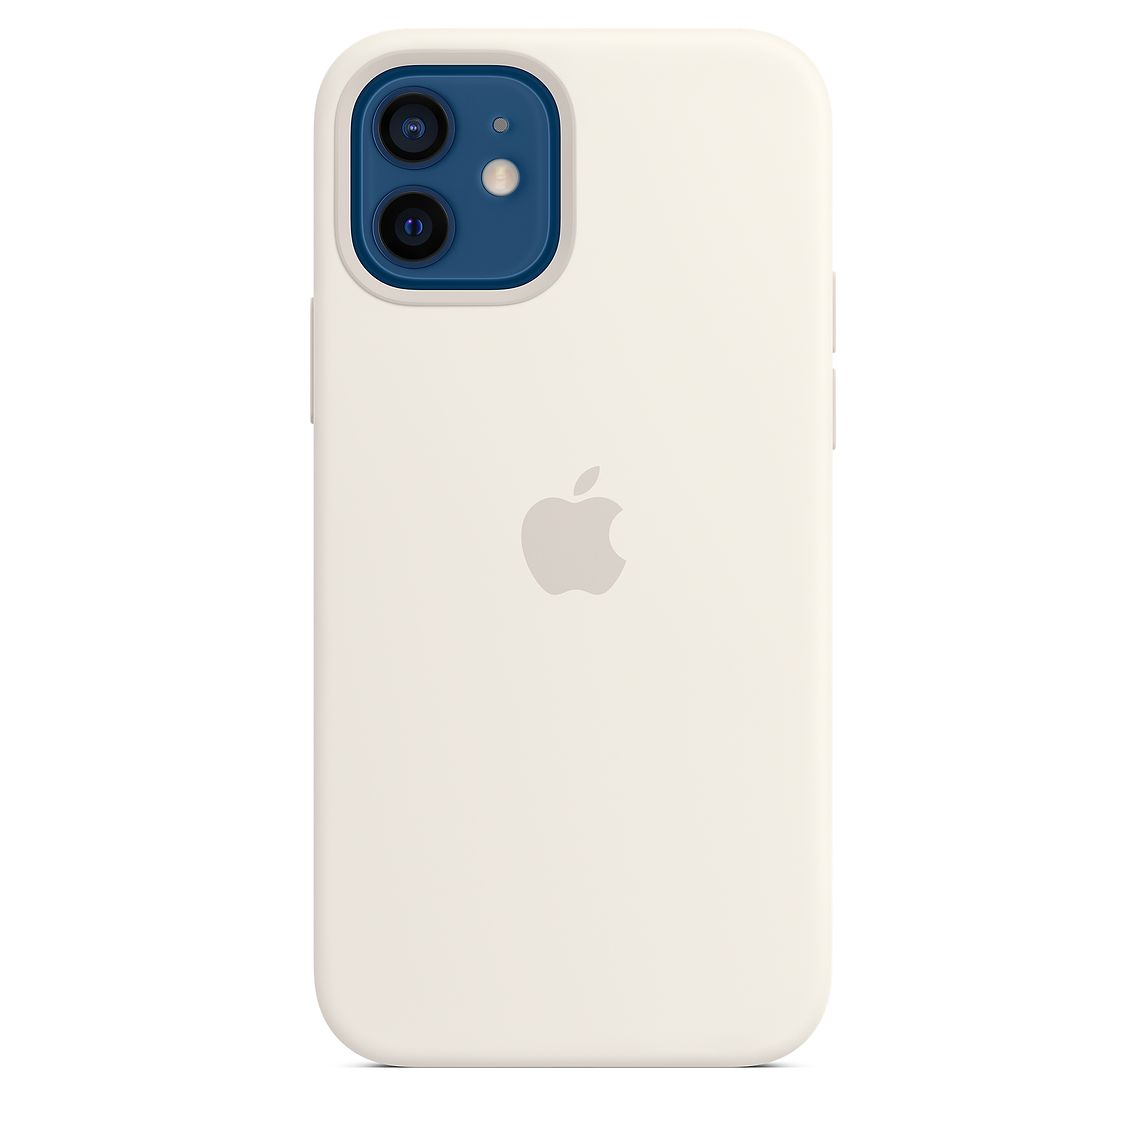 - iPhone 12 | 12 Pro Silicone Case with MagSafe / Blanco 1